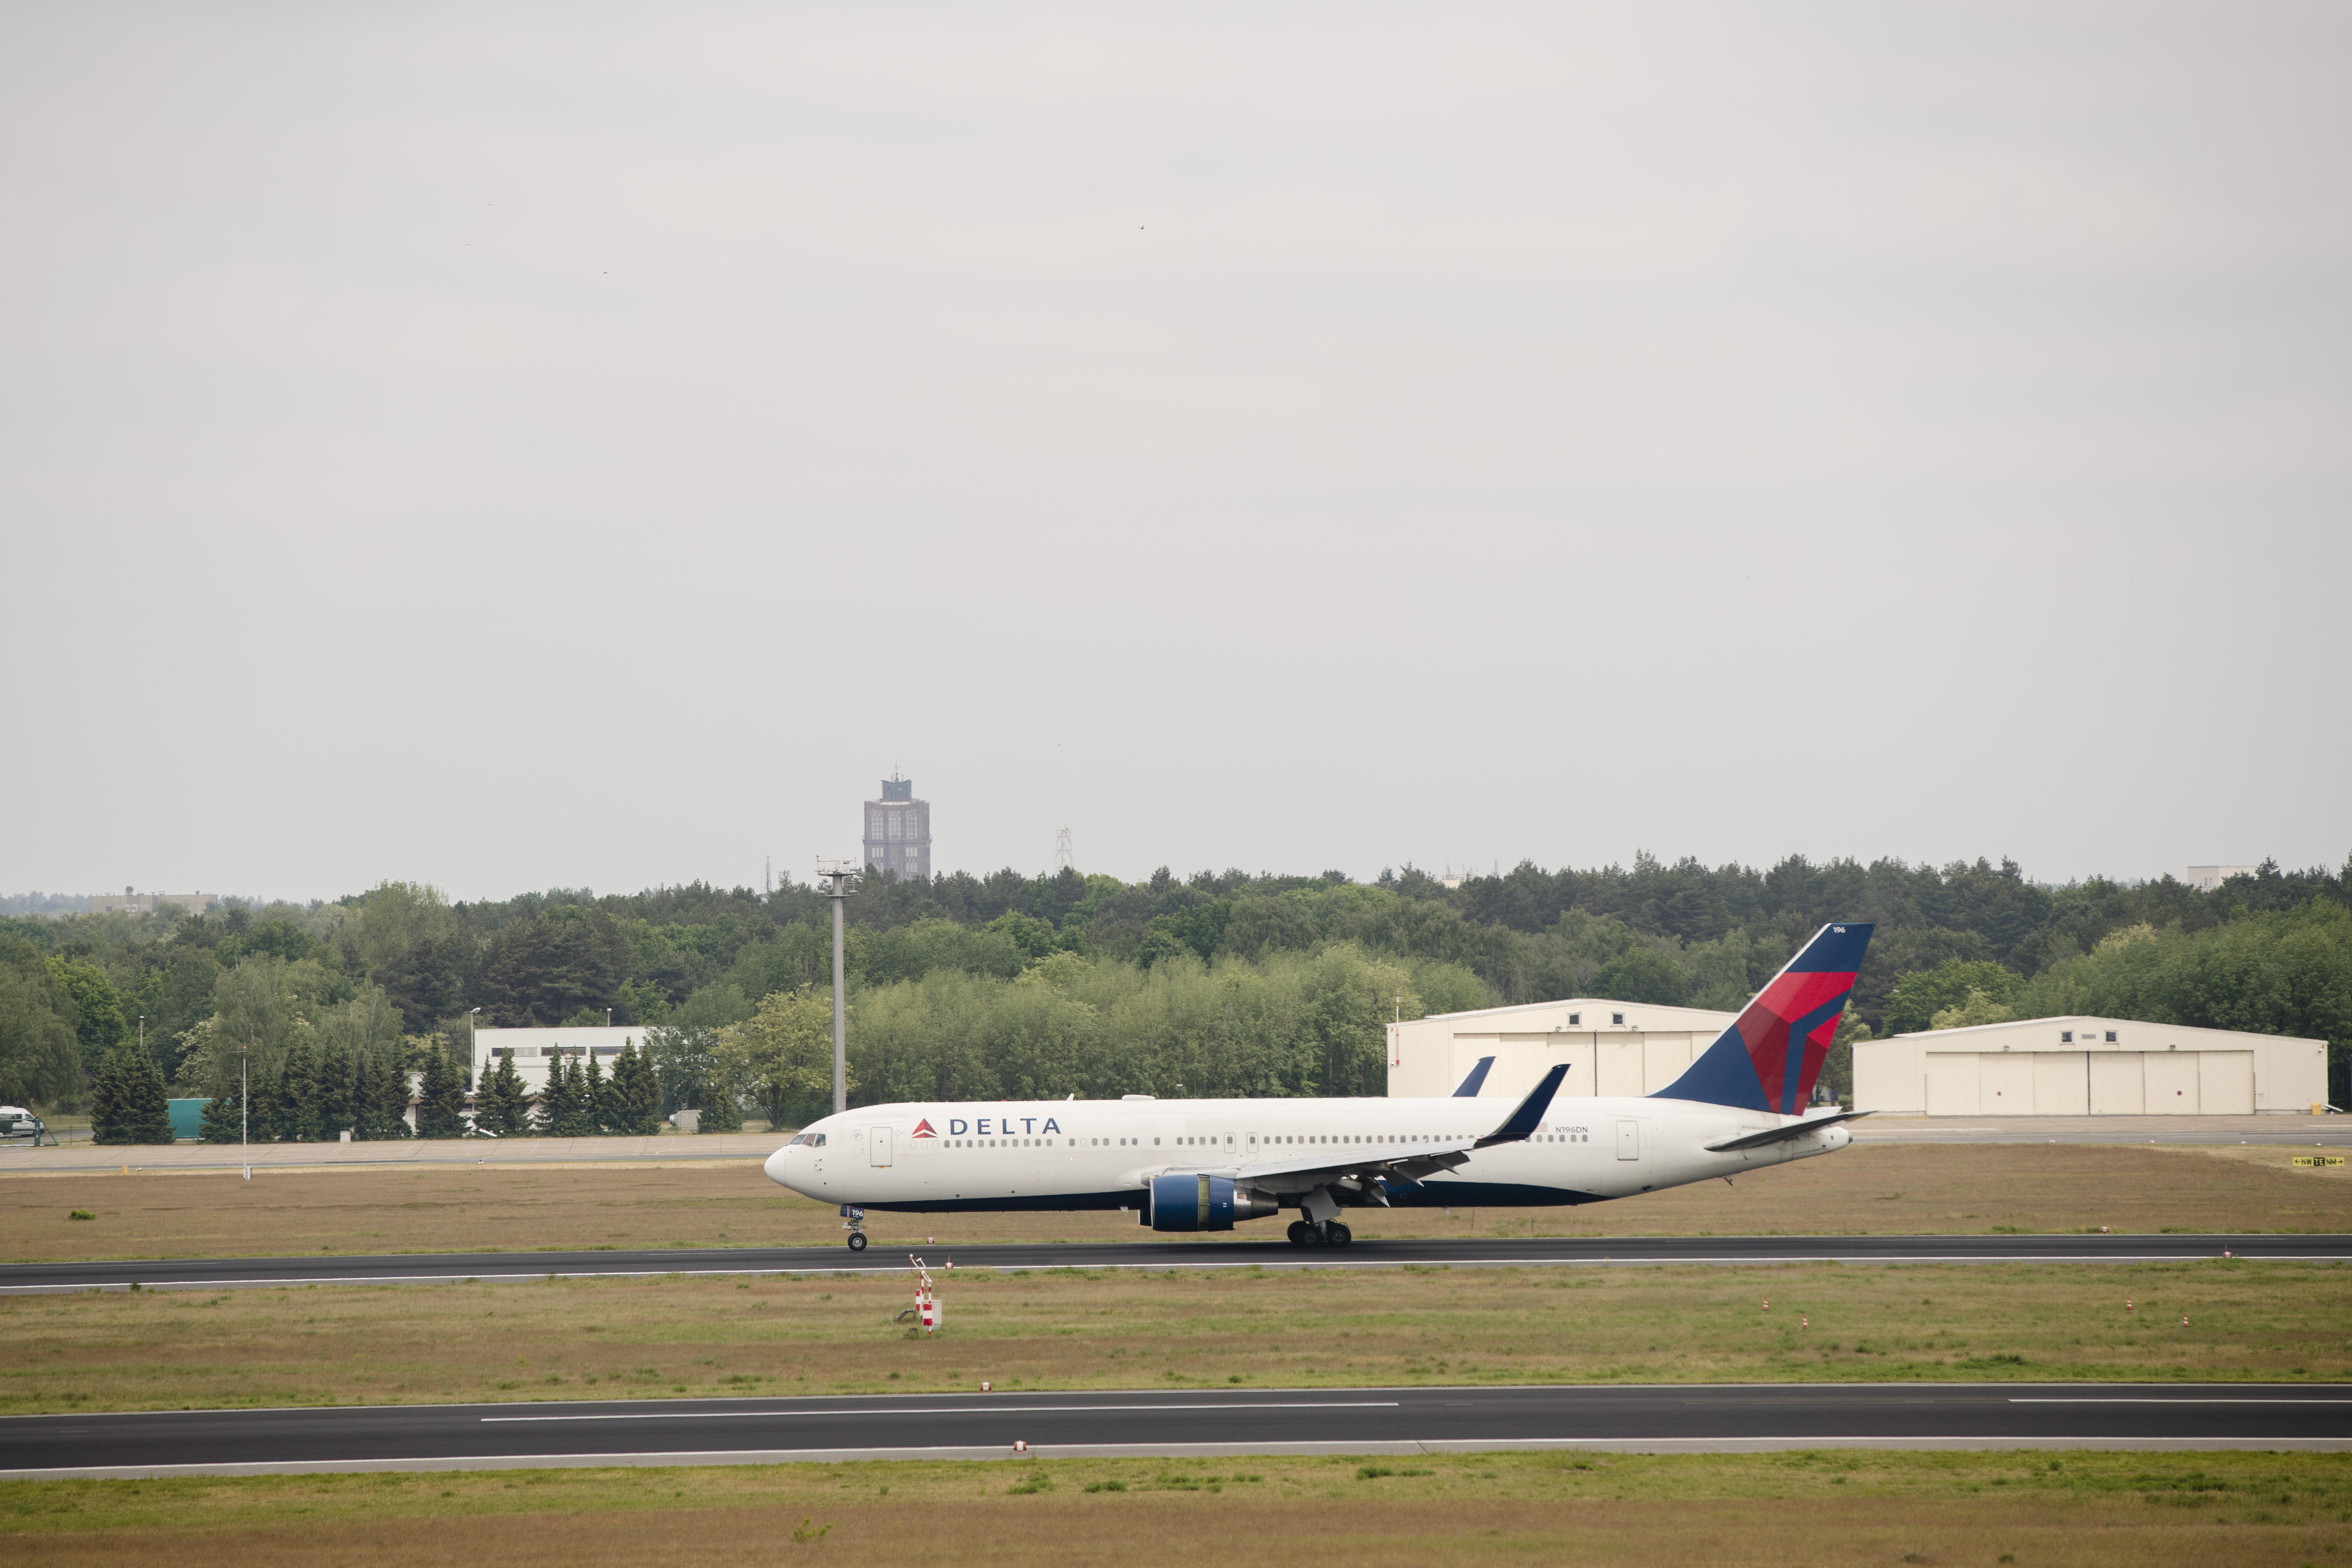 Delta Airlines opens a new direct route from New York to Berlin